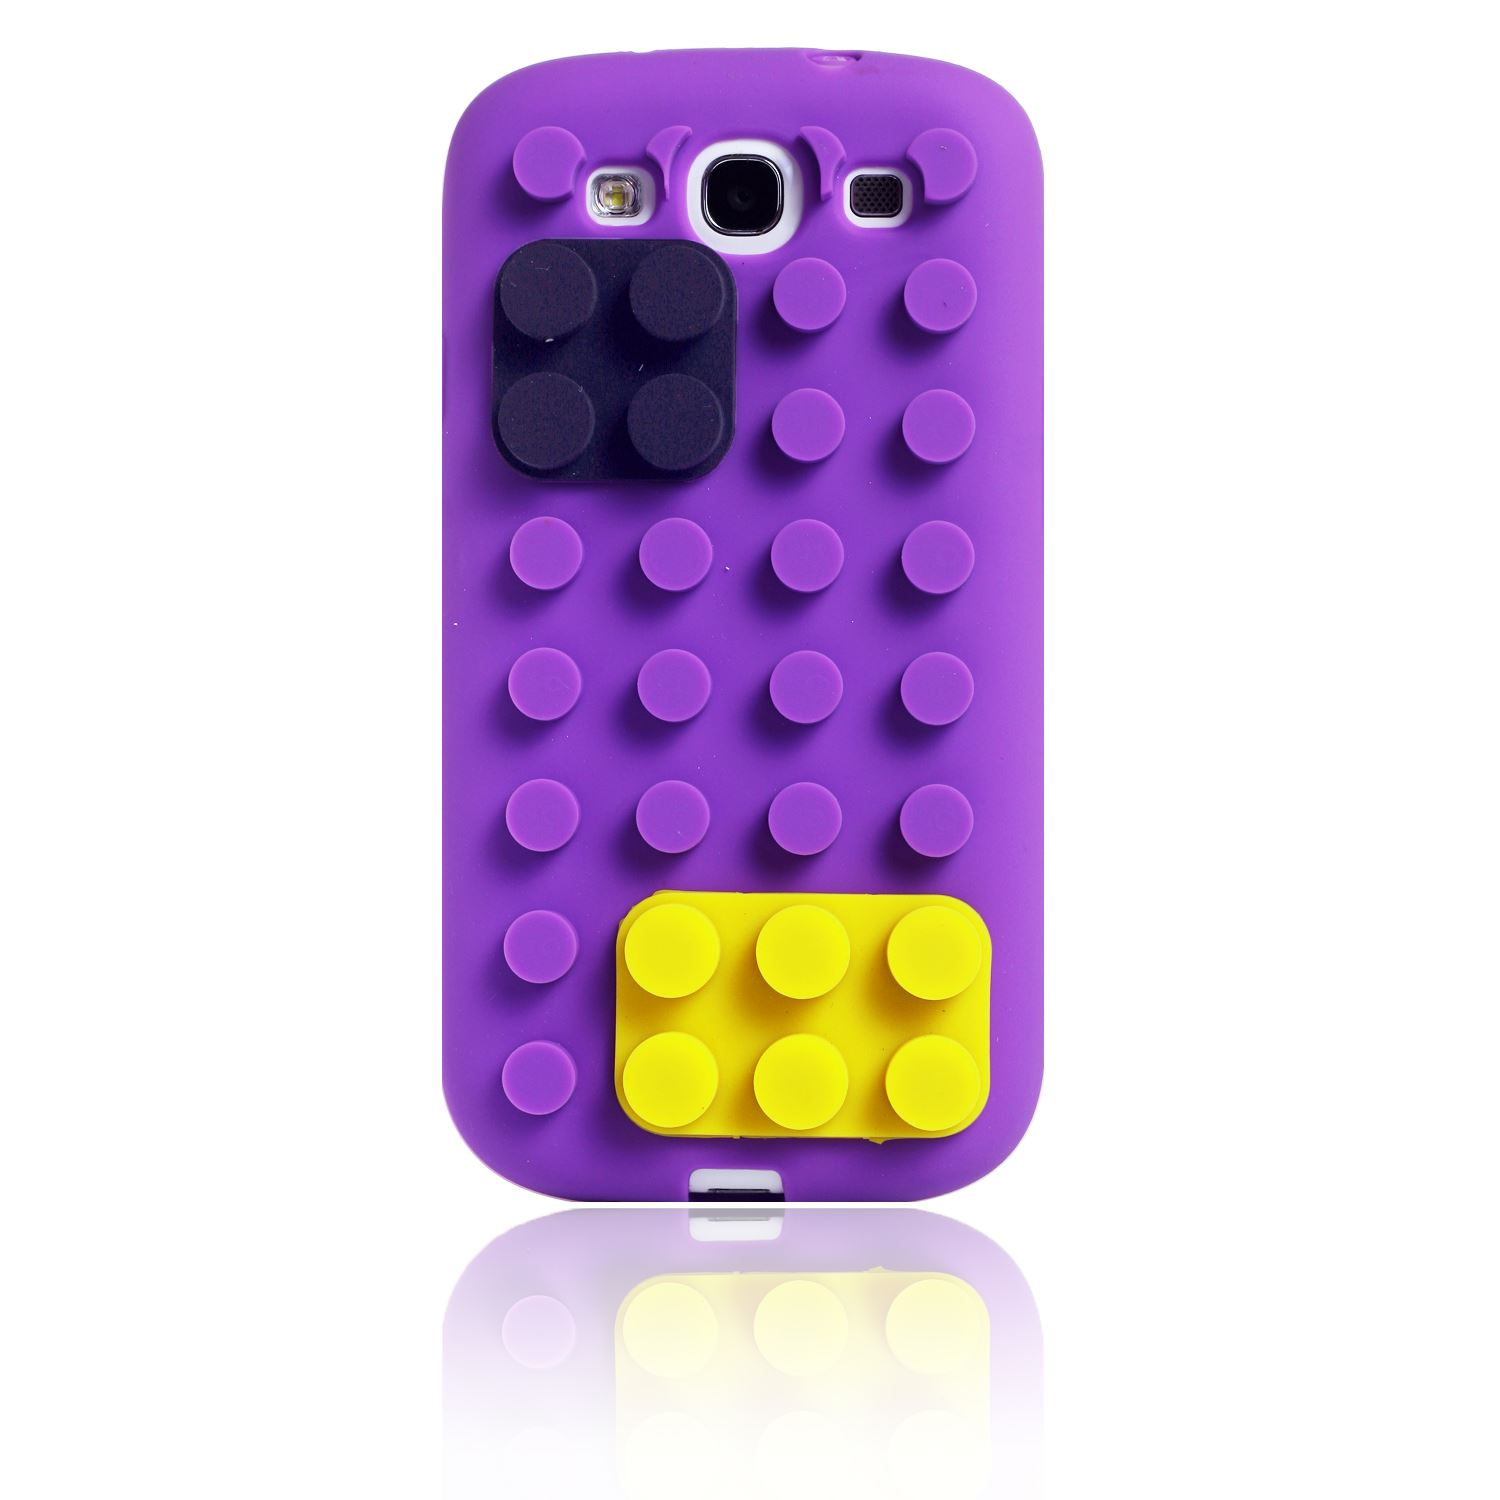 BUILDING 3D LEGO BLOCKS STAND SOFT SILICONE COVER CASE FOR